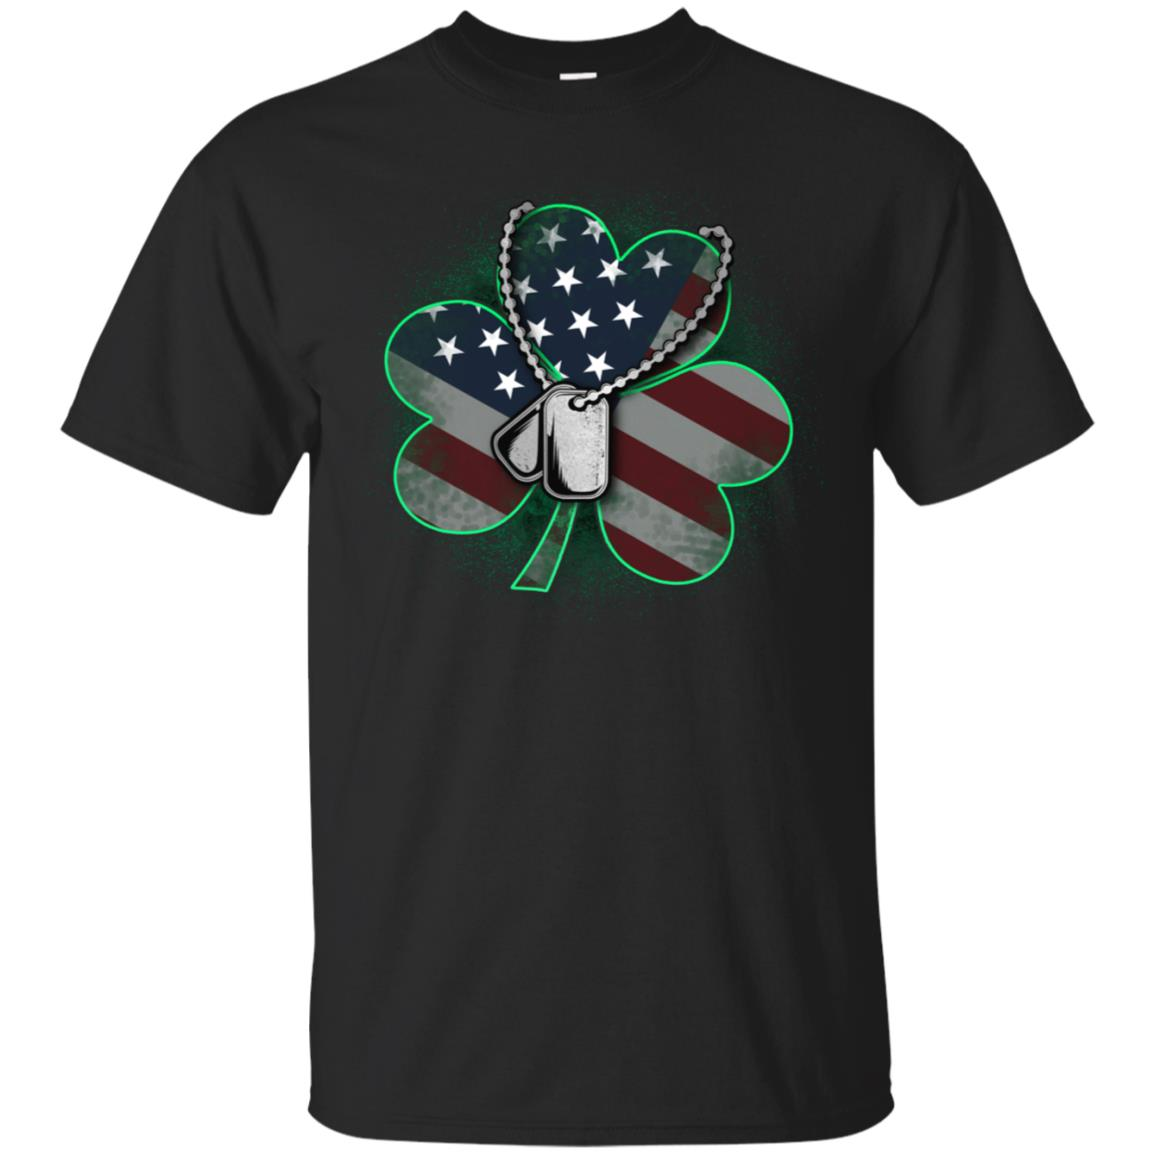 Veteran and Military St Patrick's Day Clover T-Shirt 99promocode